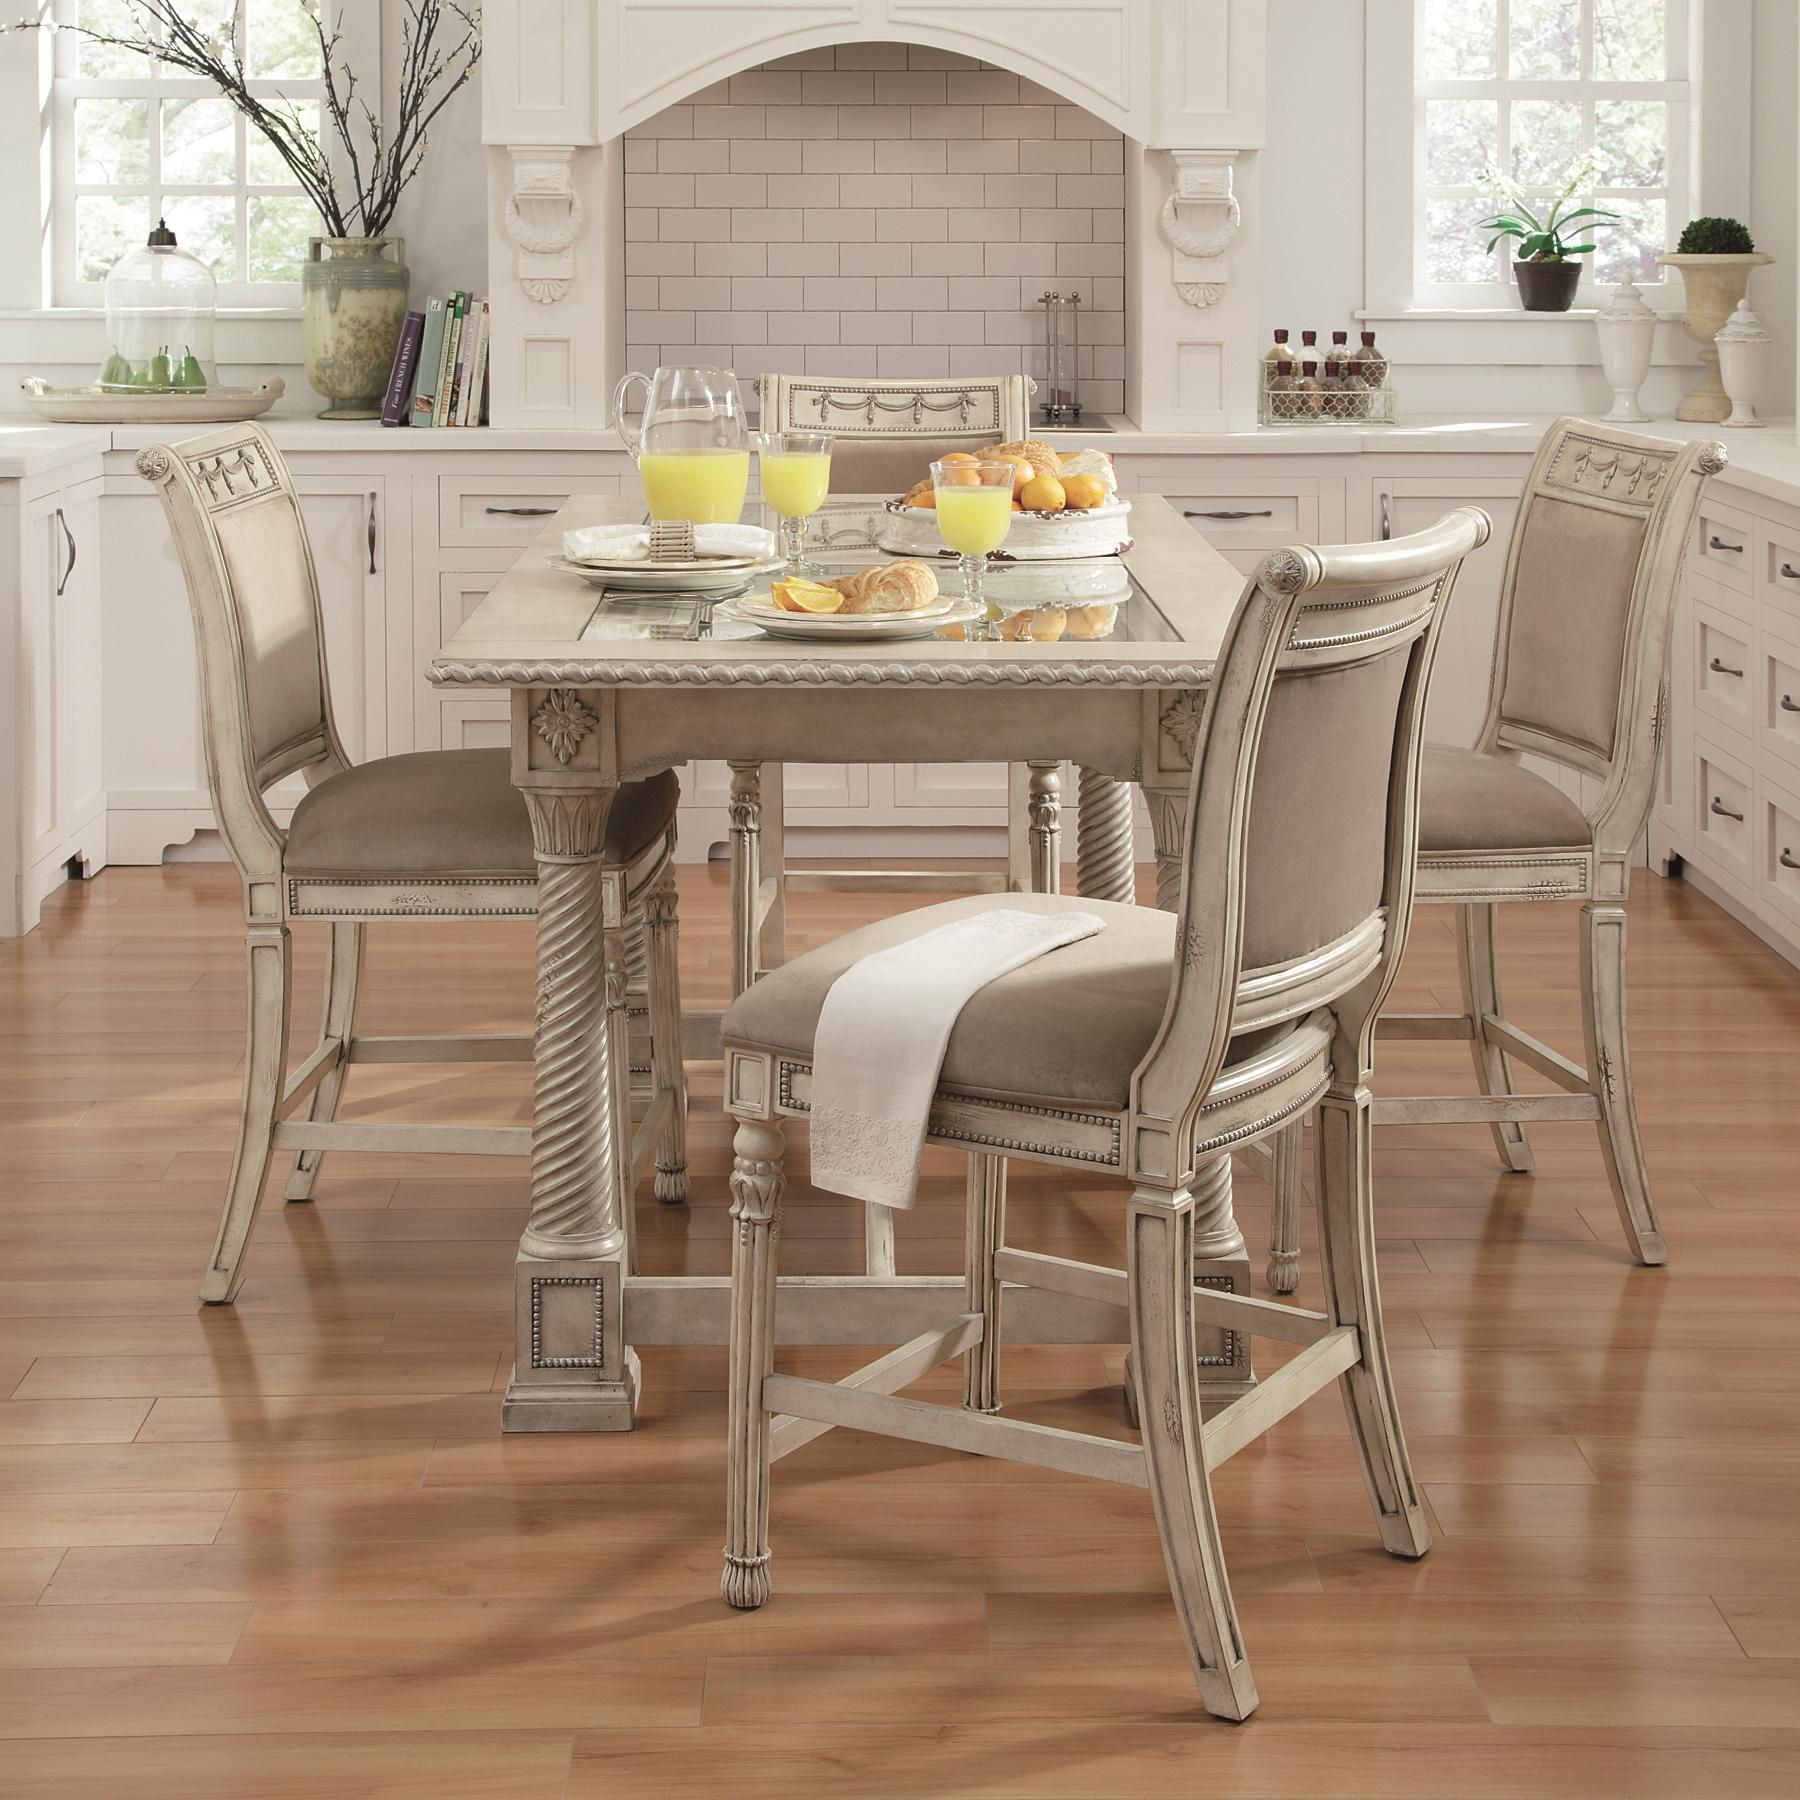 Kitchen Sets Furniture Empire Ii 5 Piece Gathering Table And Chair Set By Schnadig